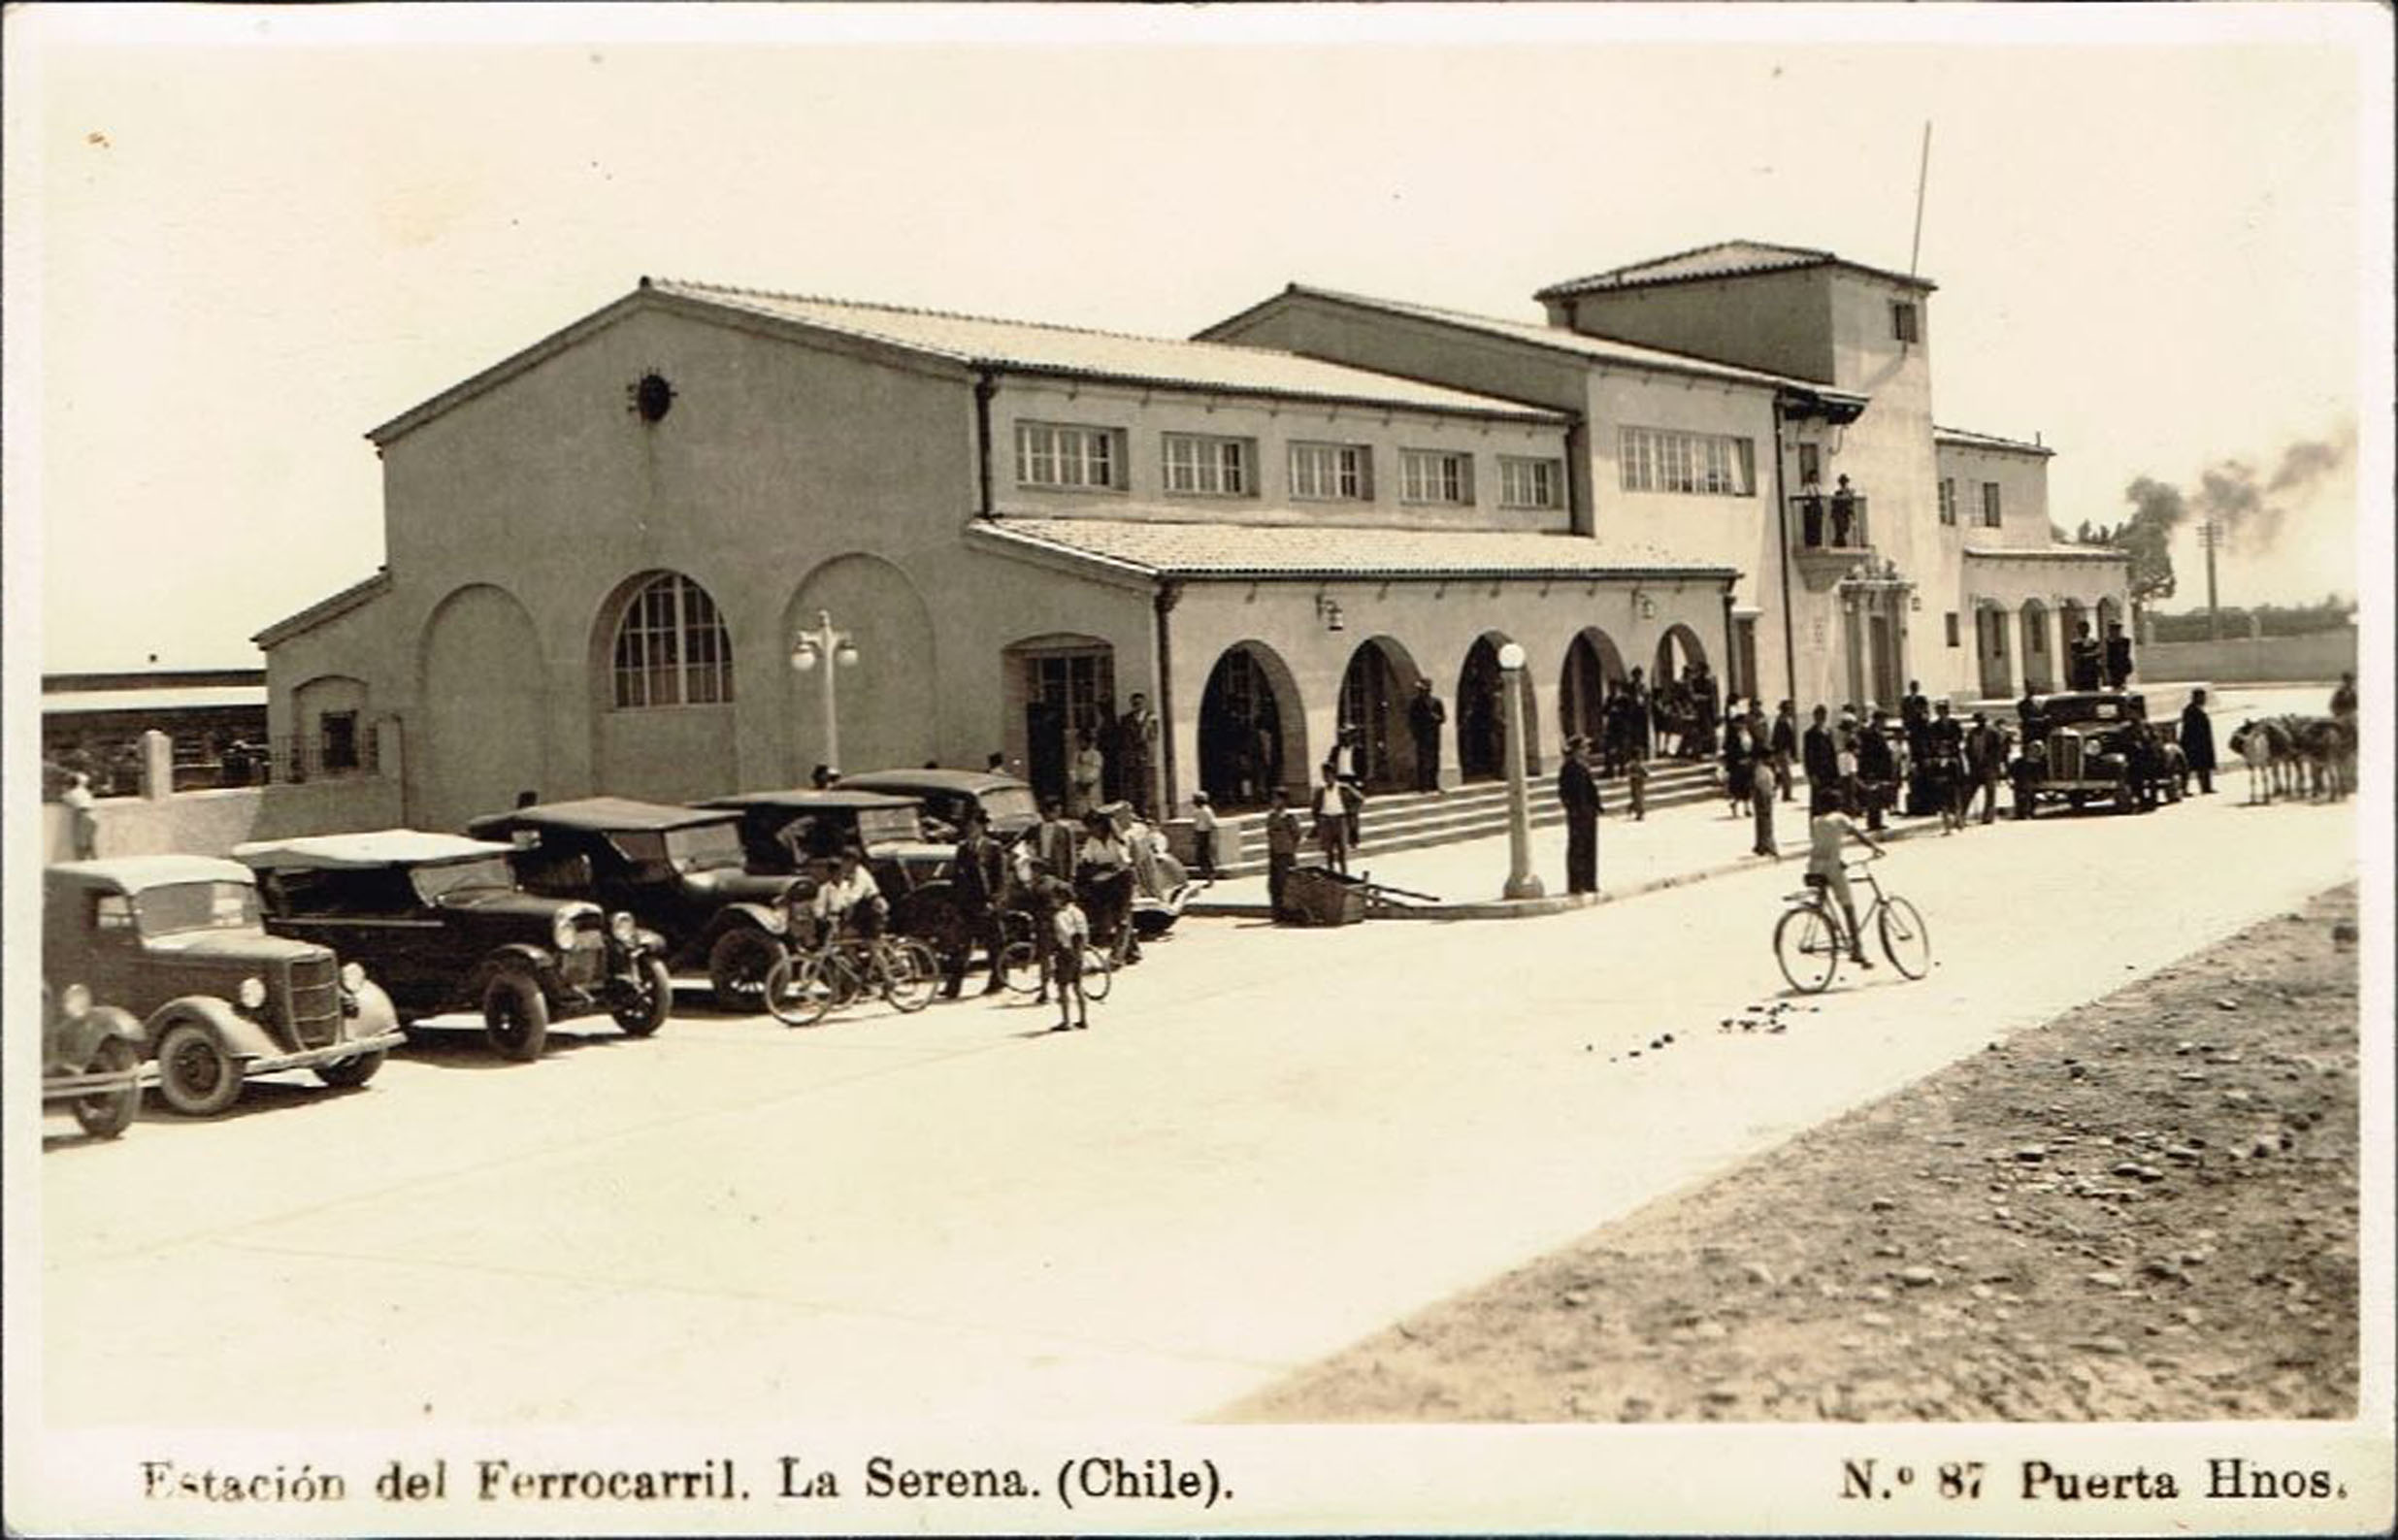 Enterreno - Fotos históricas de chile - fotos antiguas de Chile - Estación de La Serena en 1935